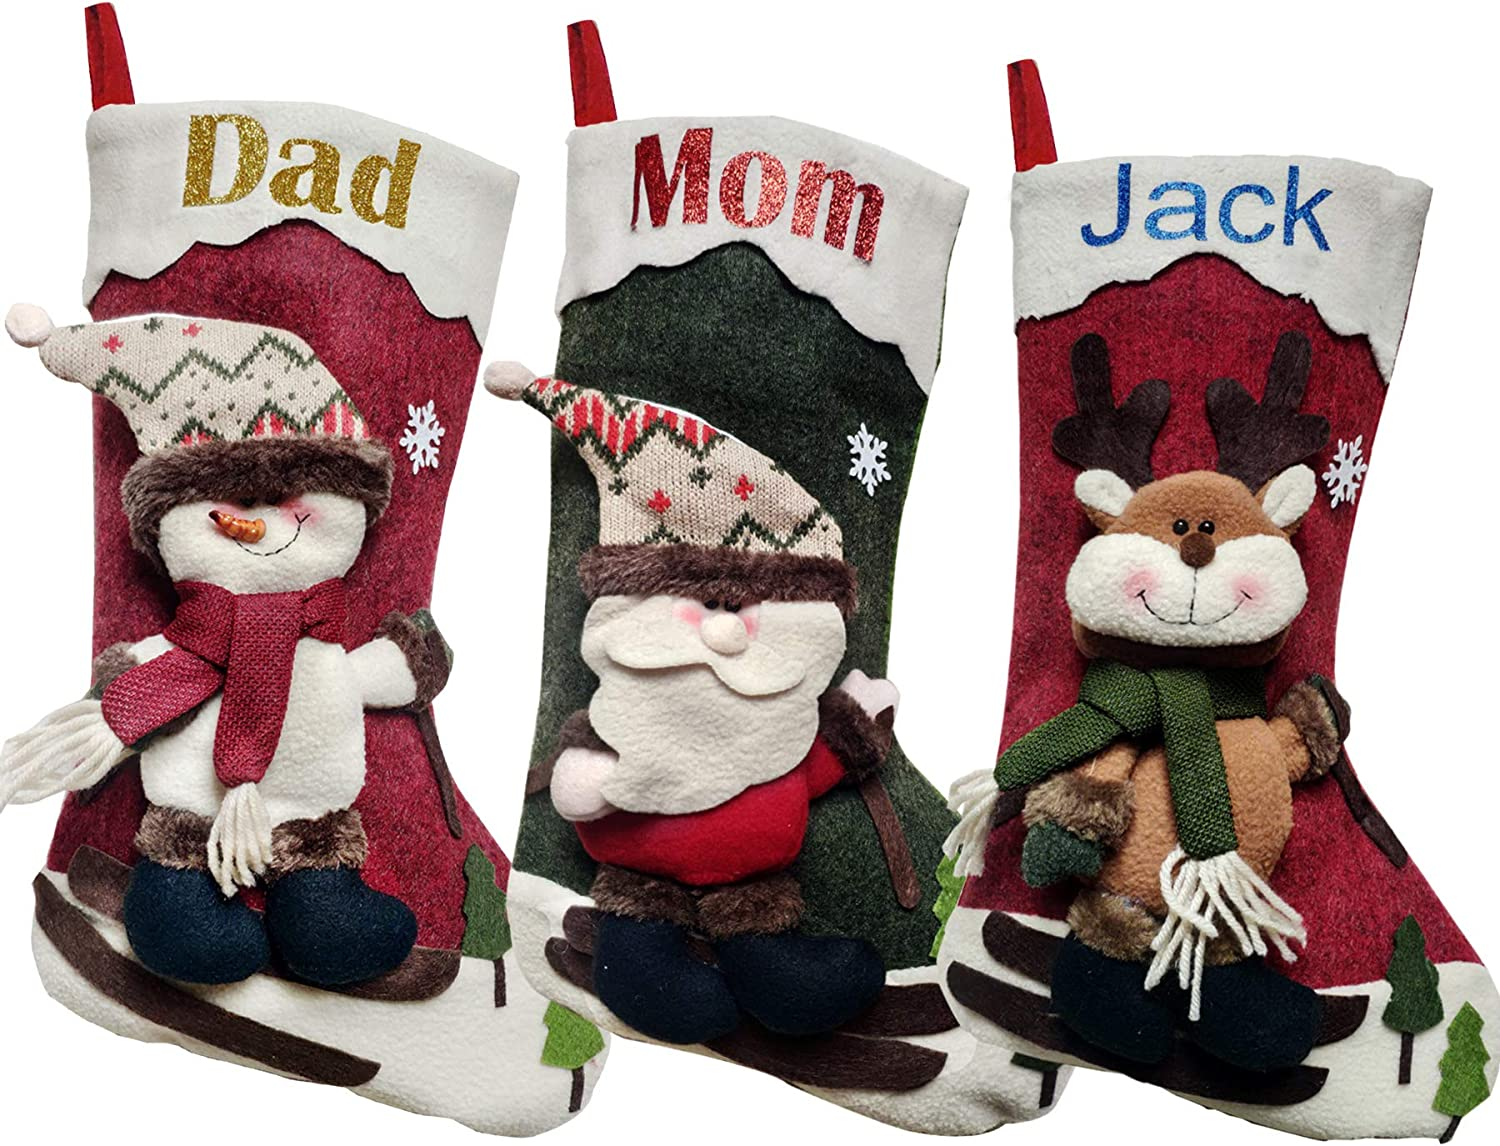 """XENTUMI Personalized Name Christmas Stockings 18"""" 3 Overseas parallel import regular item Popularity of Set"""